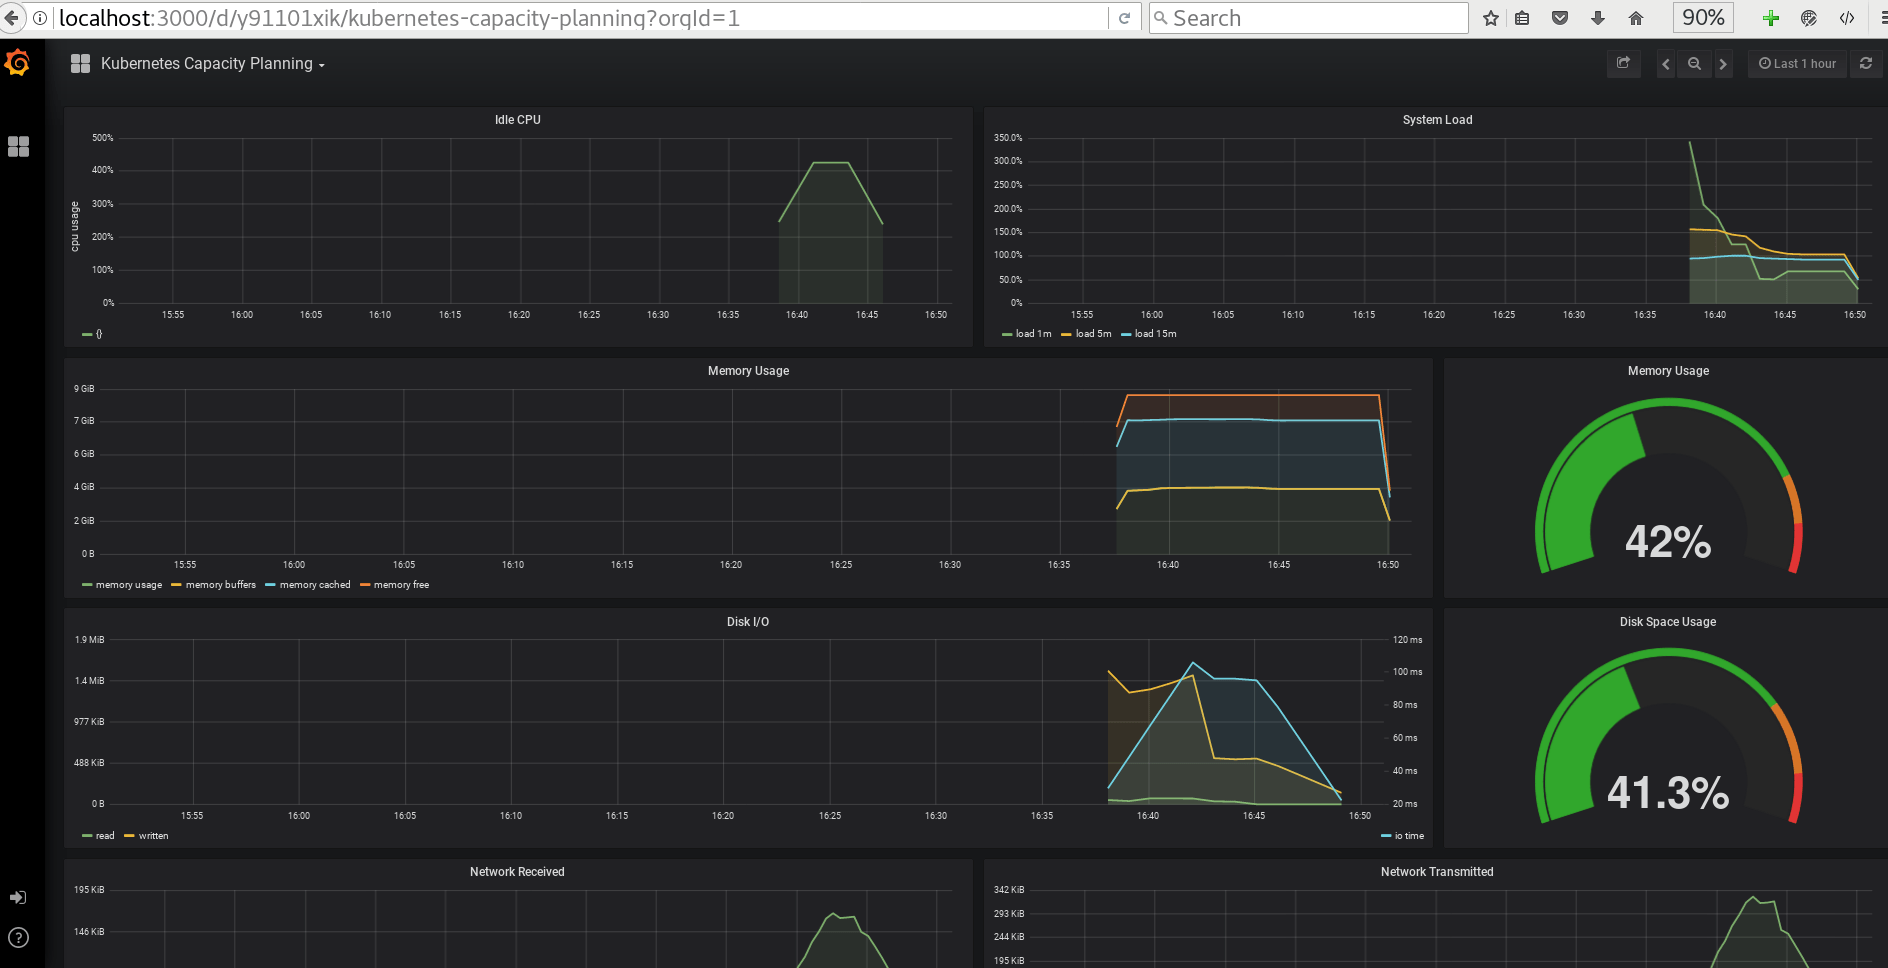 Deploying Helm / Tiller, Prometheus, AlertManager, Grafana